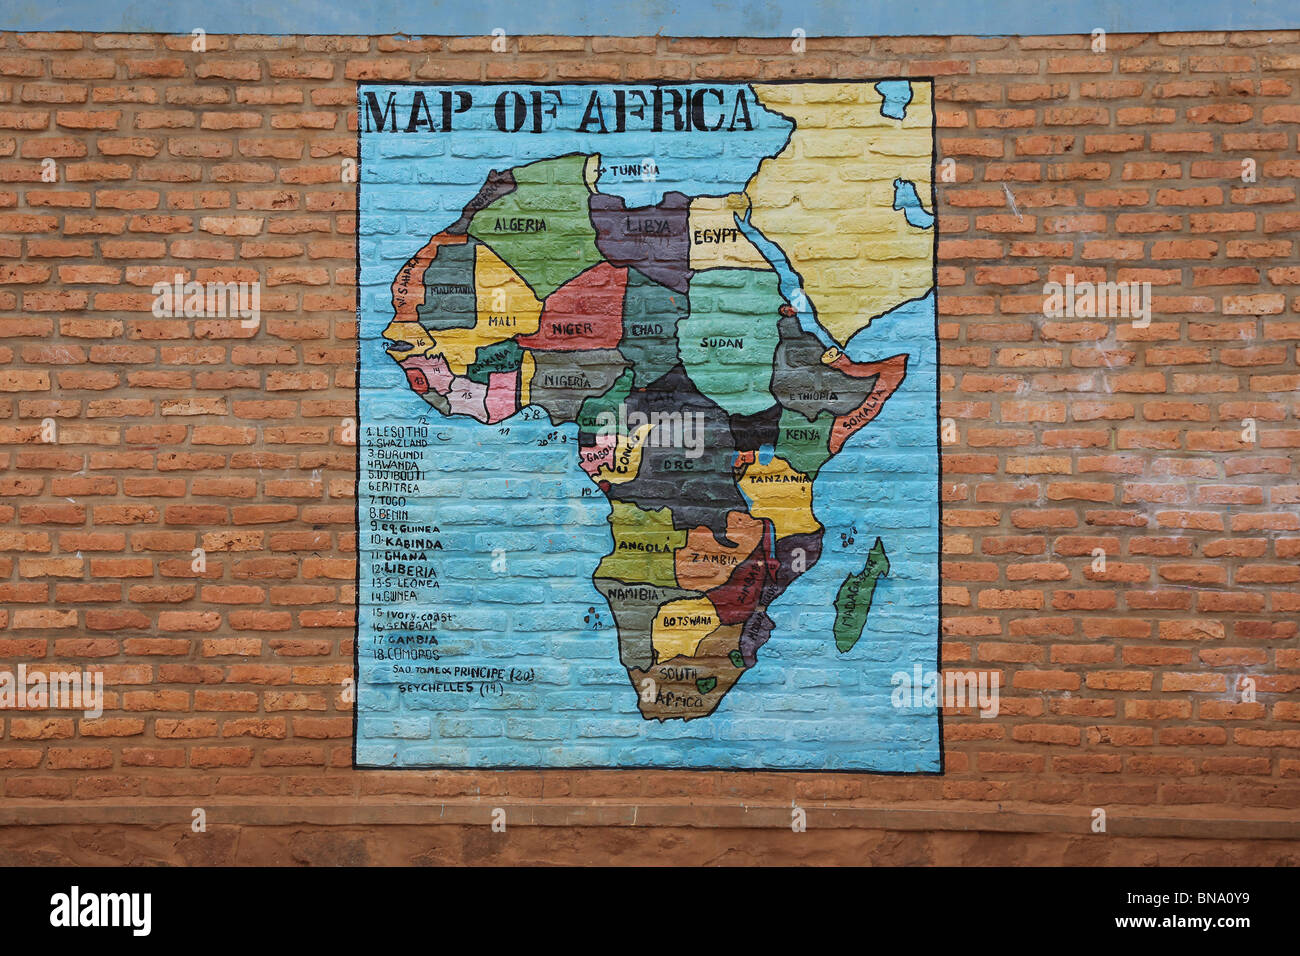 Worksheet. map of africa painted on the wall of a school in africa Rwanda